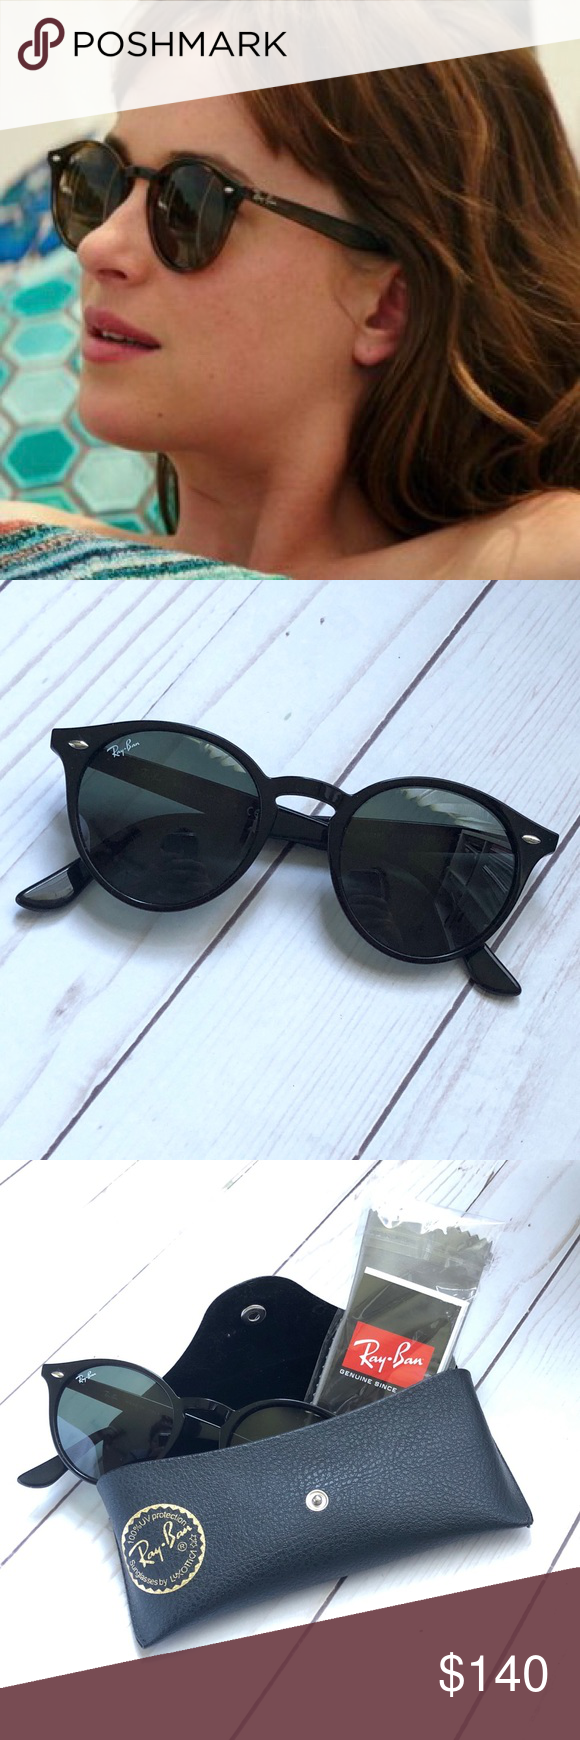 87fcda60aeaf2 Ray-Ban Round Sunglasses Black RB2180 Brand New Ray Bans in perfect  condition - come